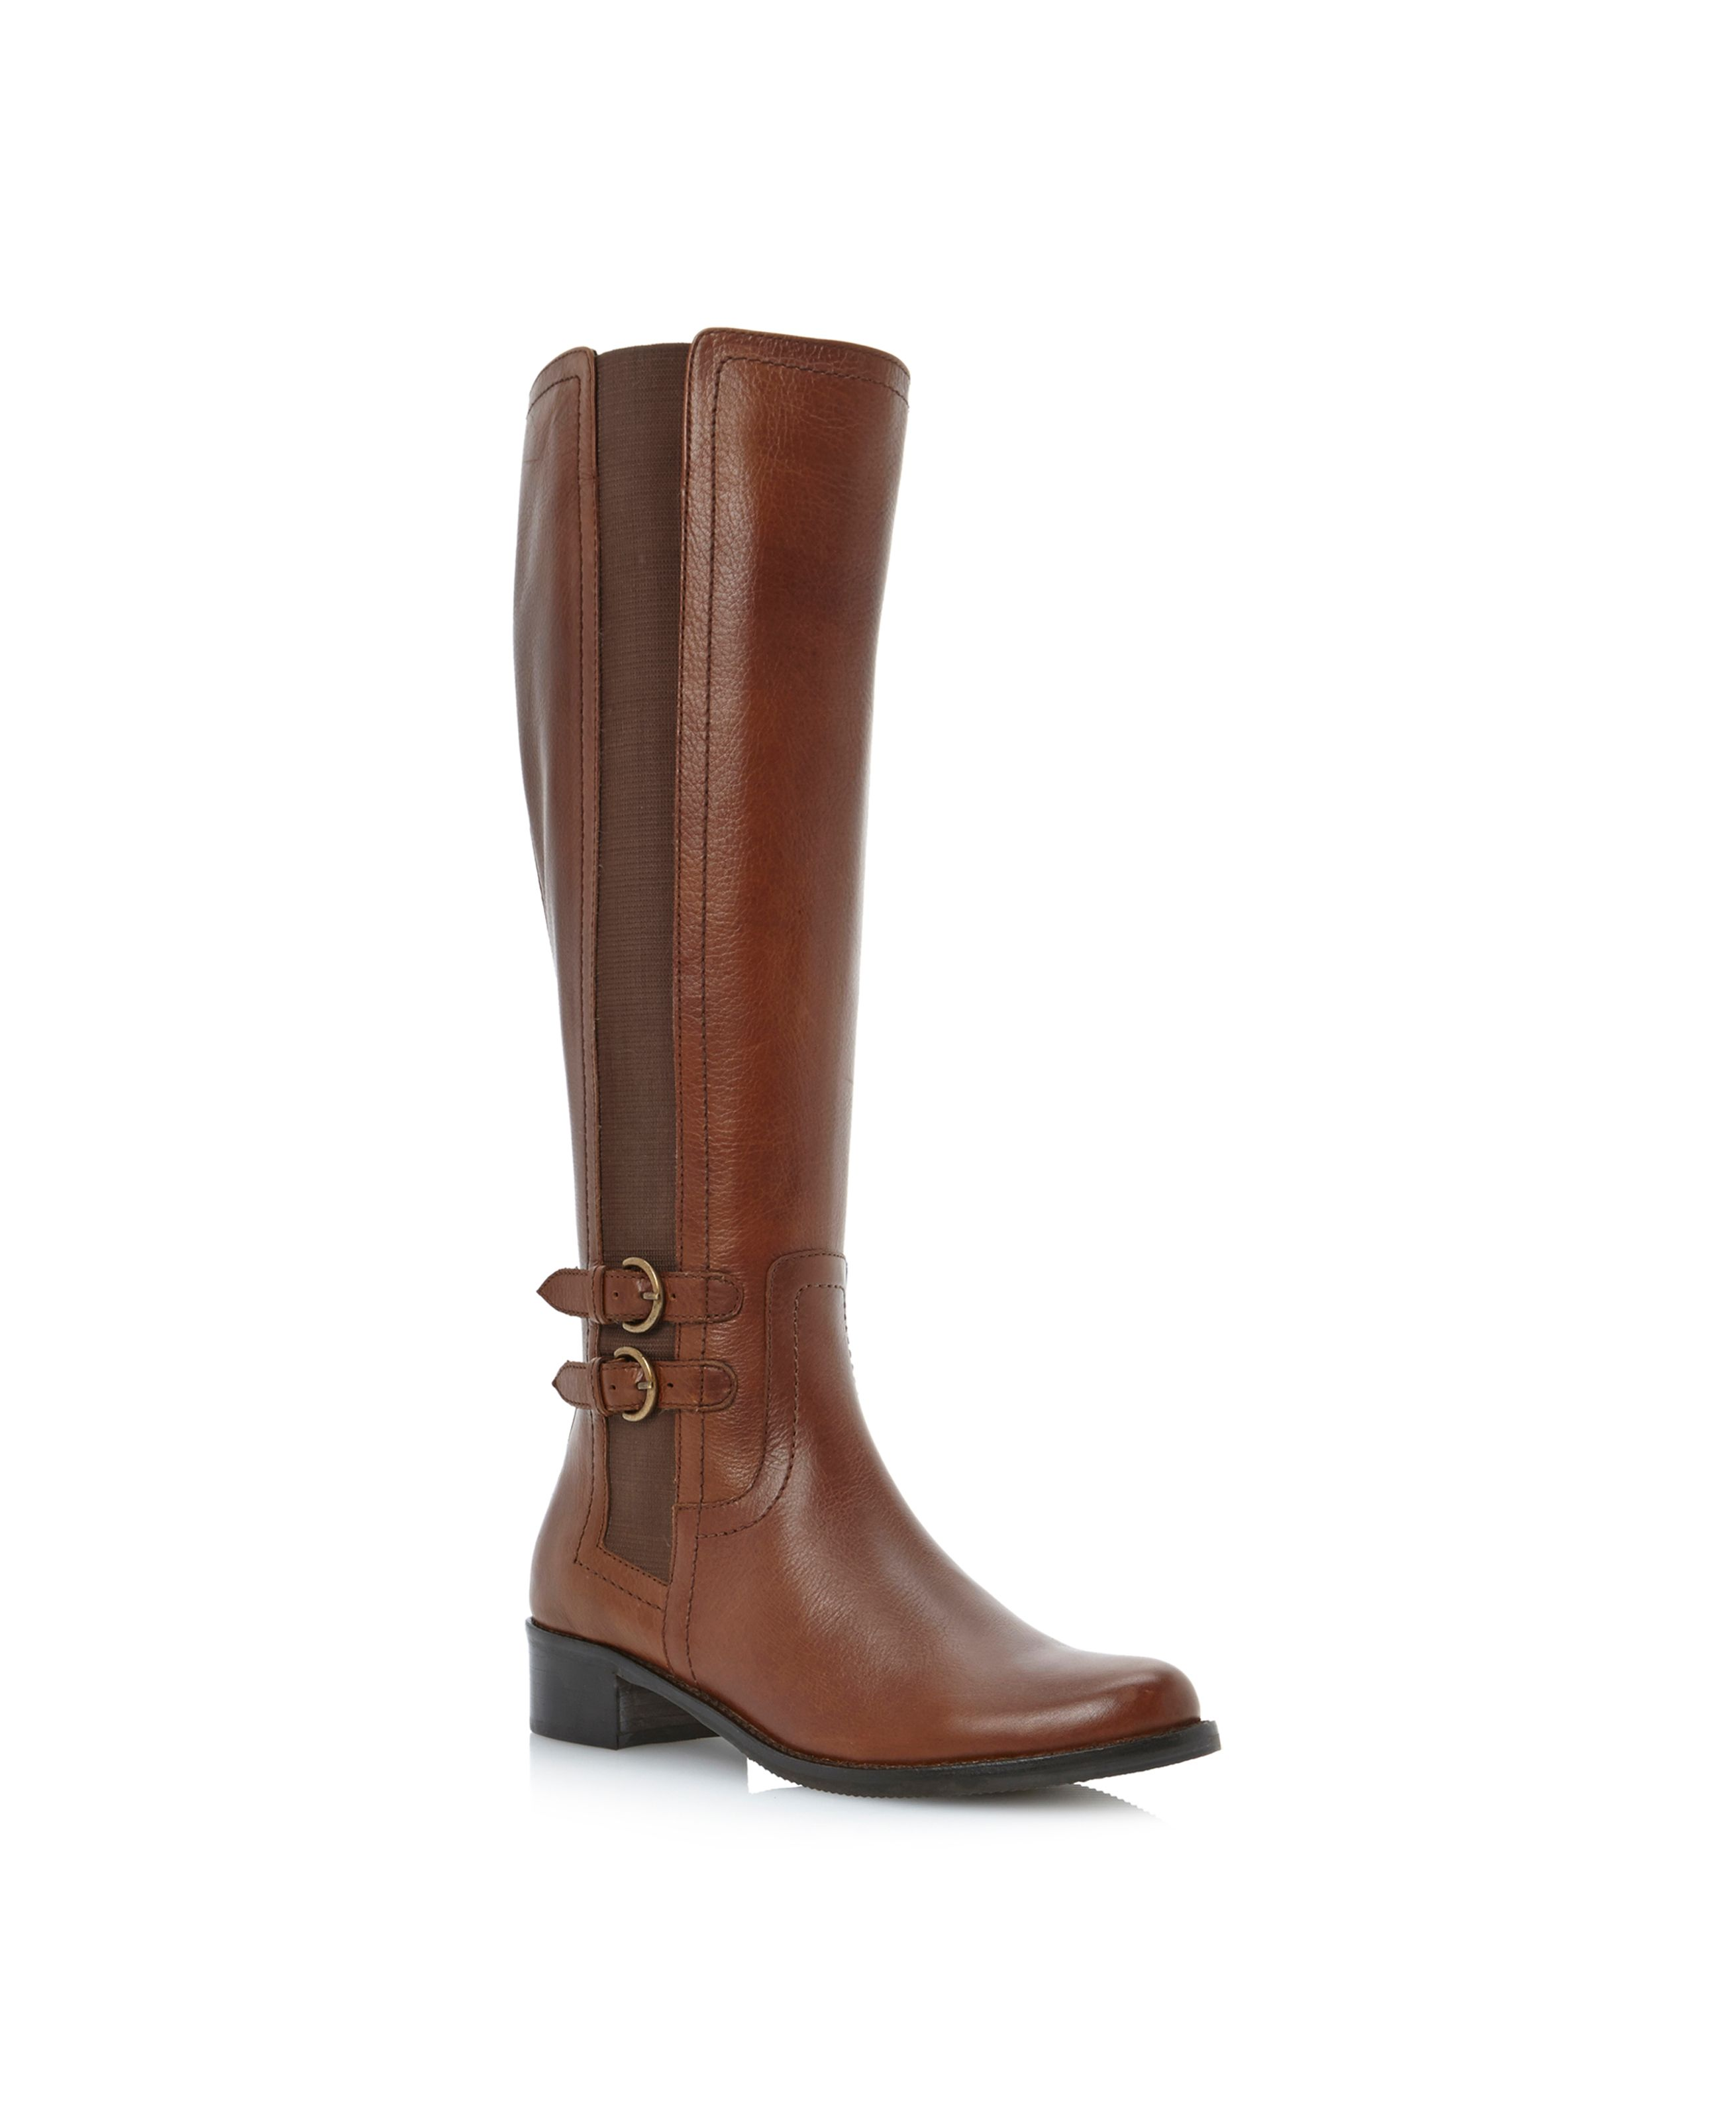 Timpleton two buckle elastic riding boots